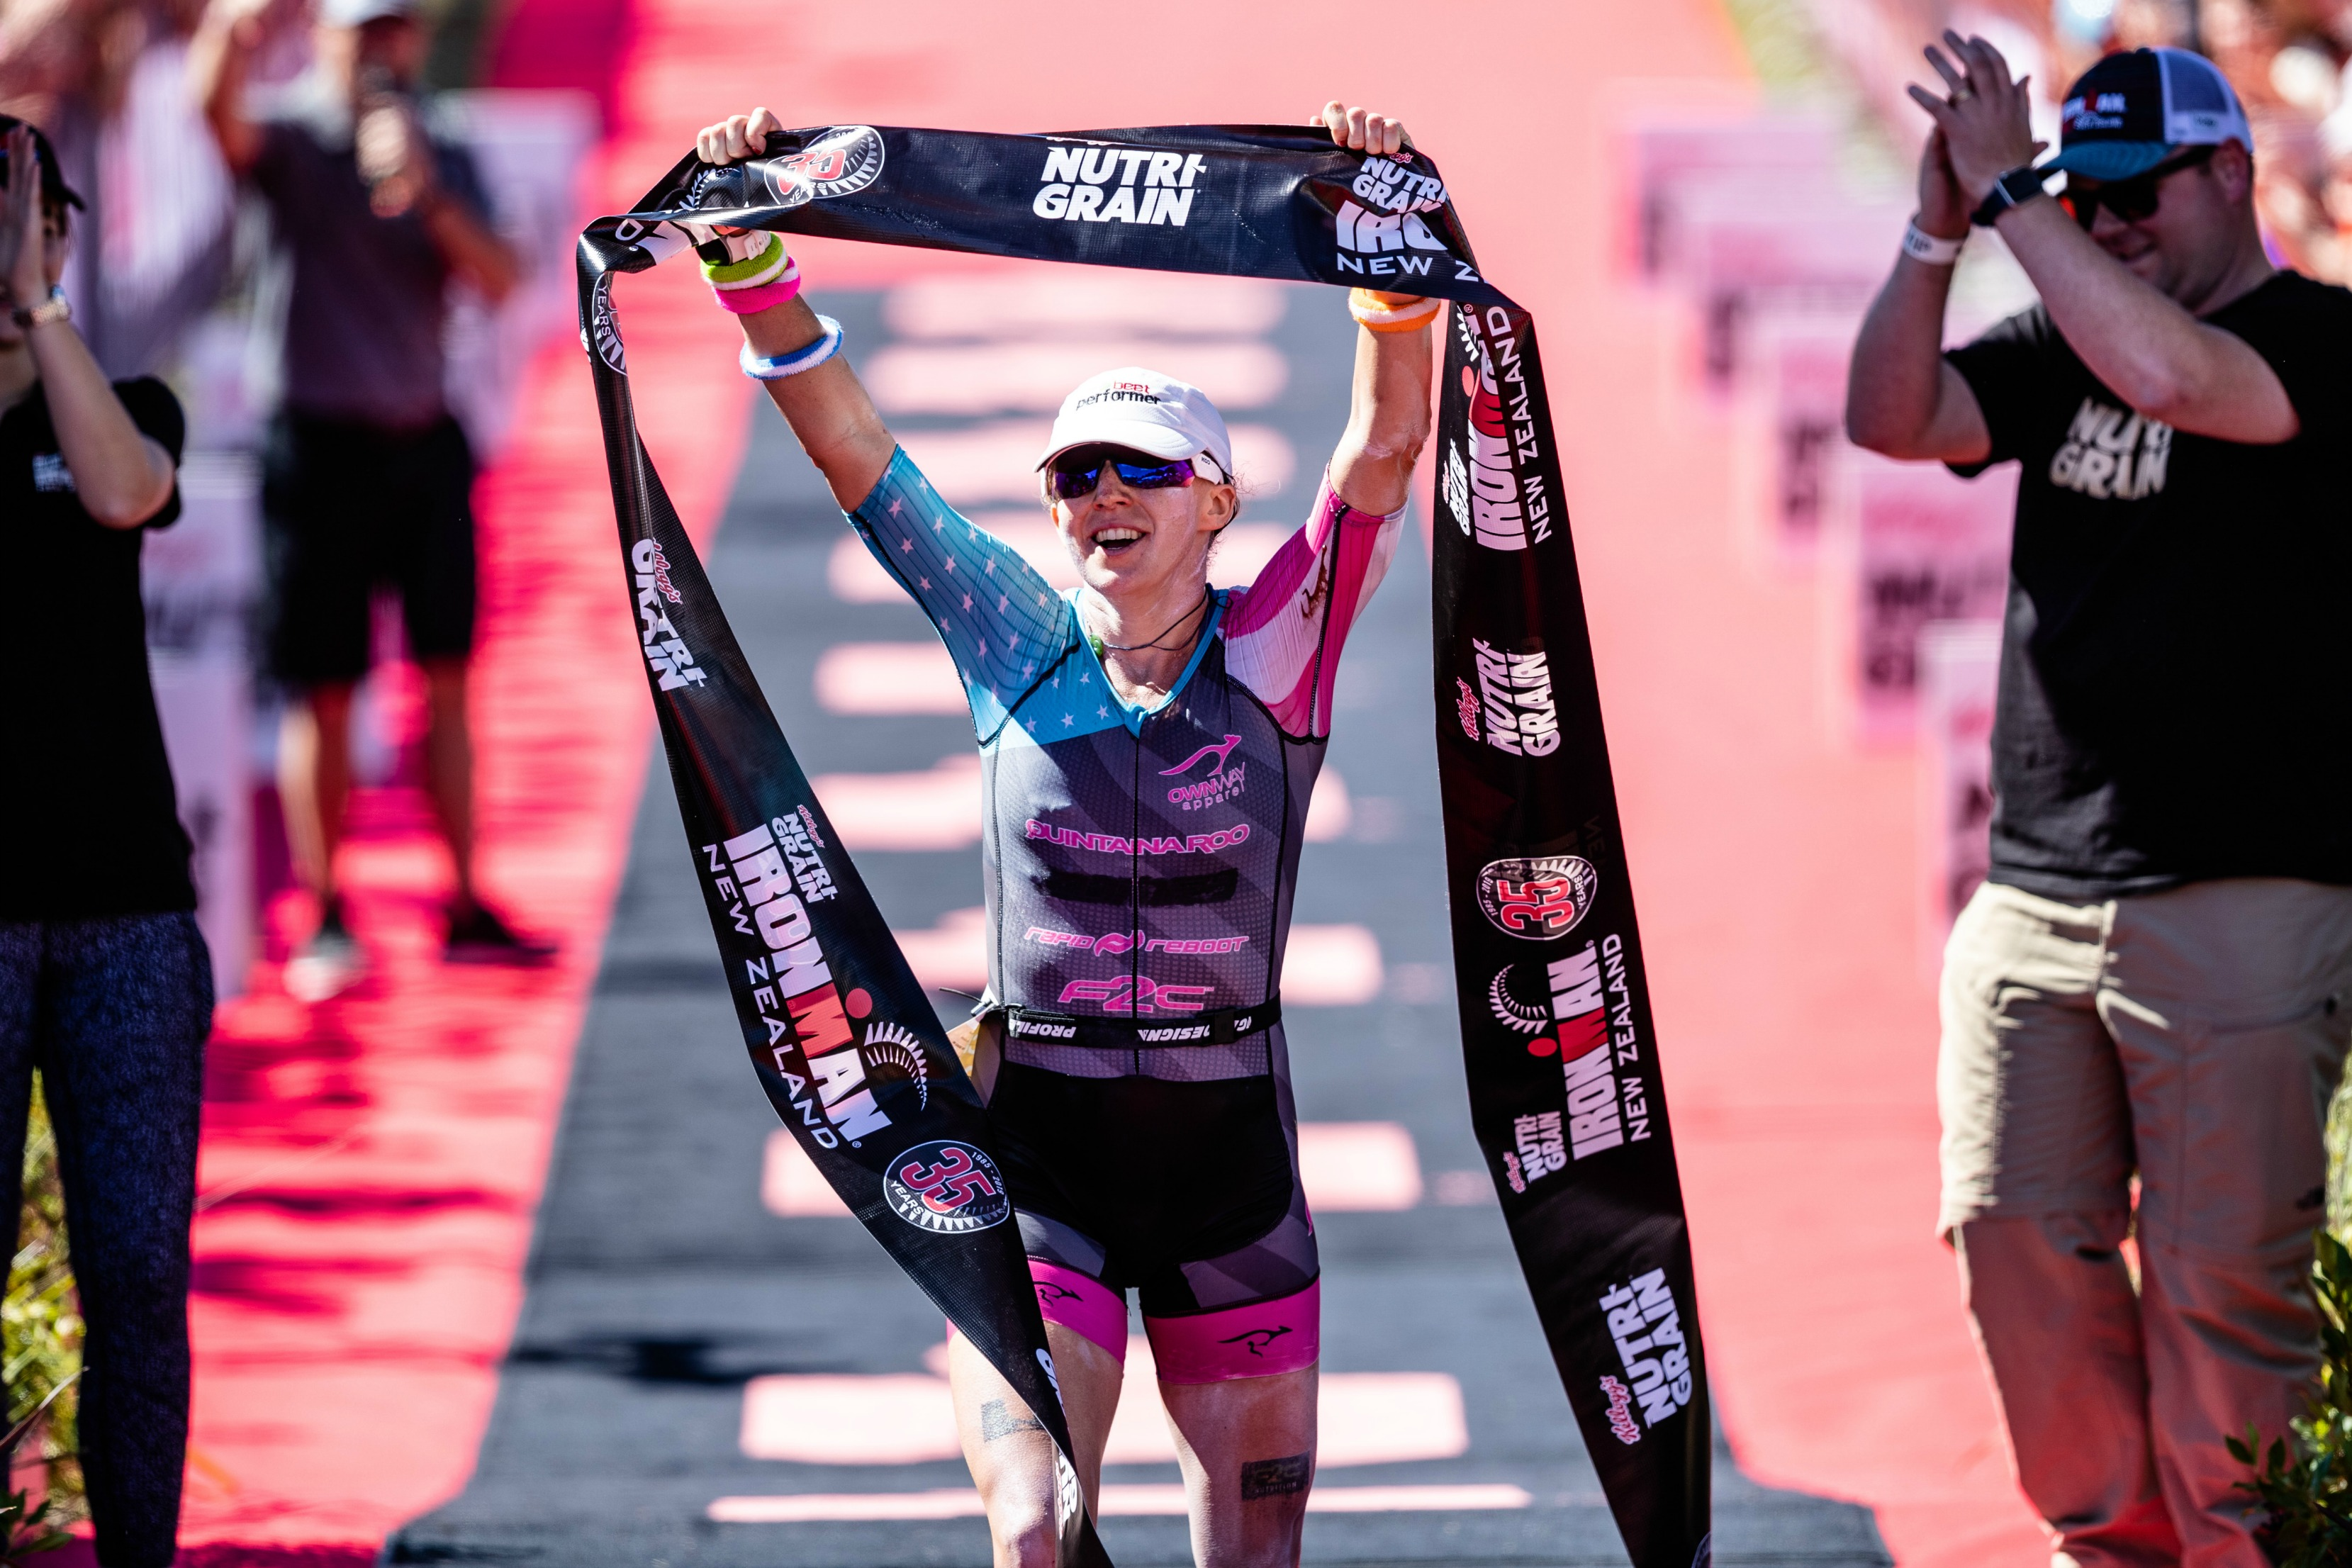 Mccauley Smashes Race Record In Emotional Ironman Nz Victory